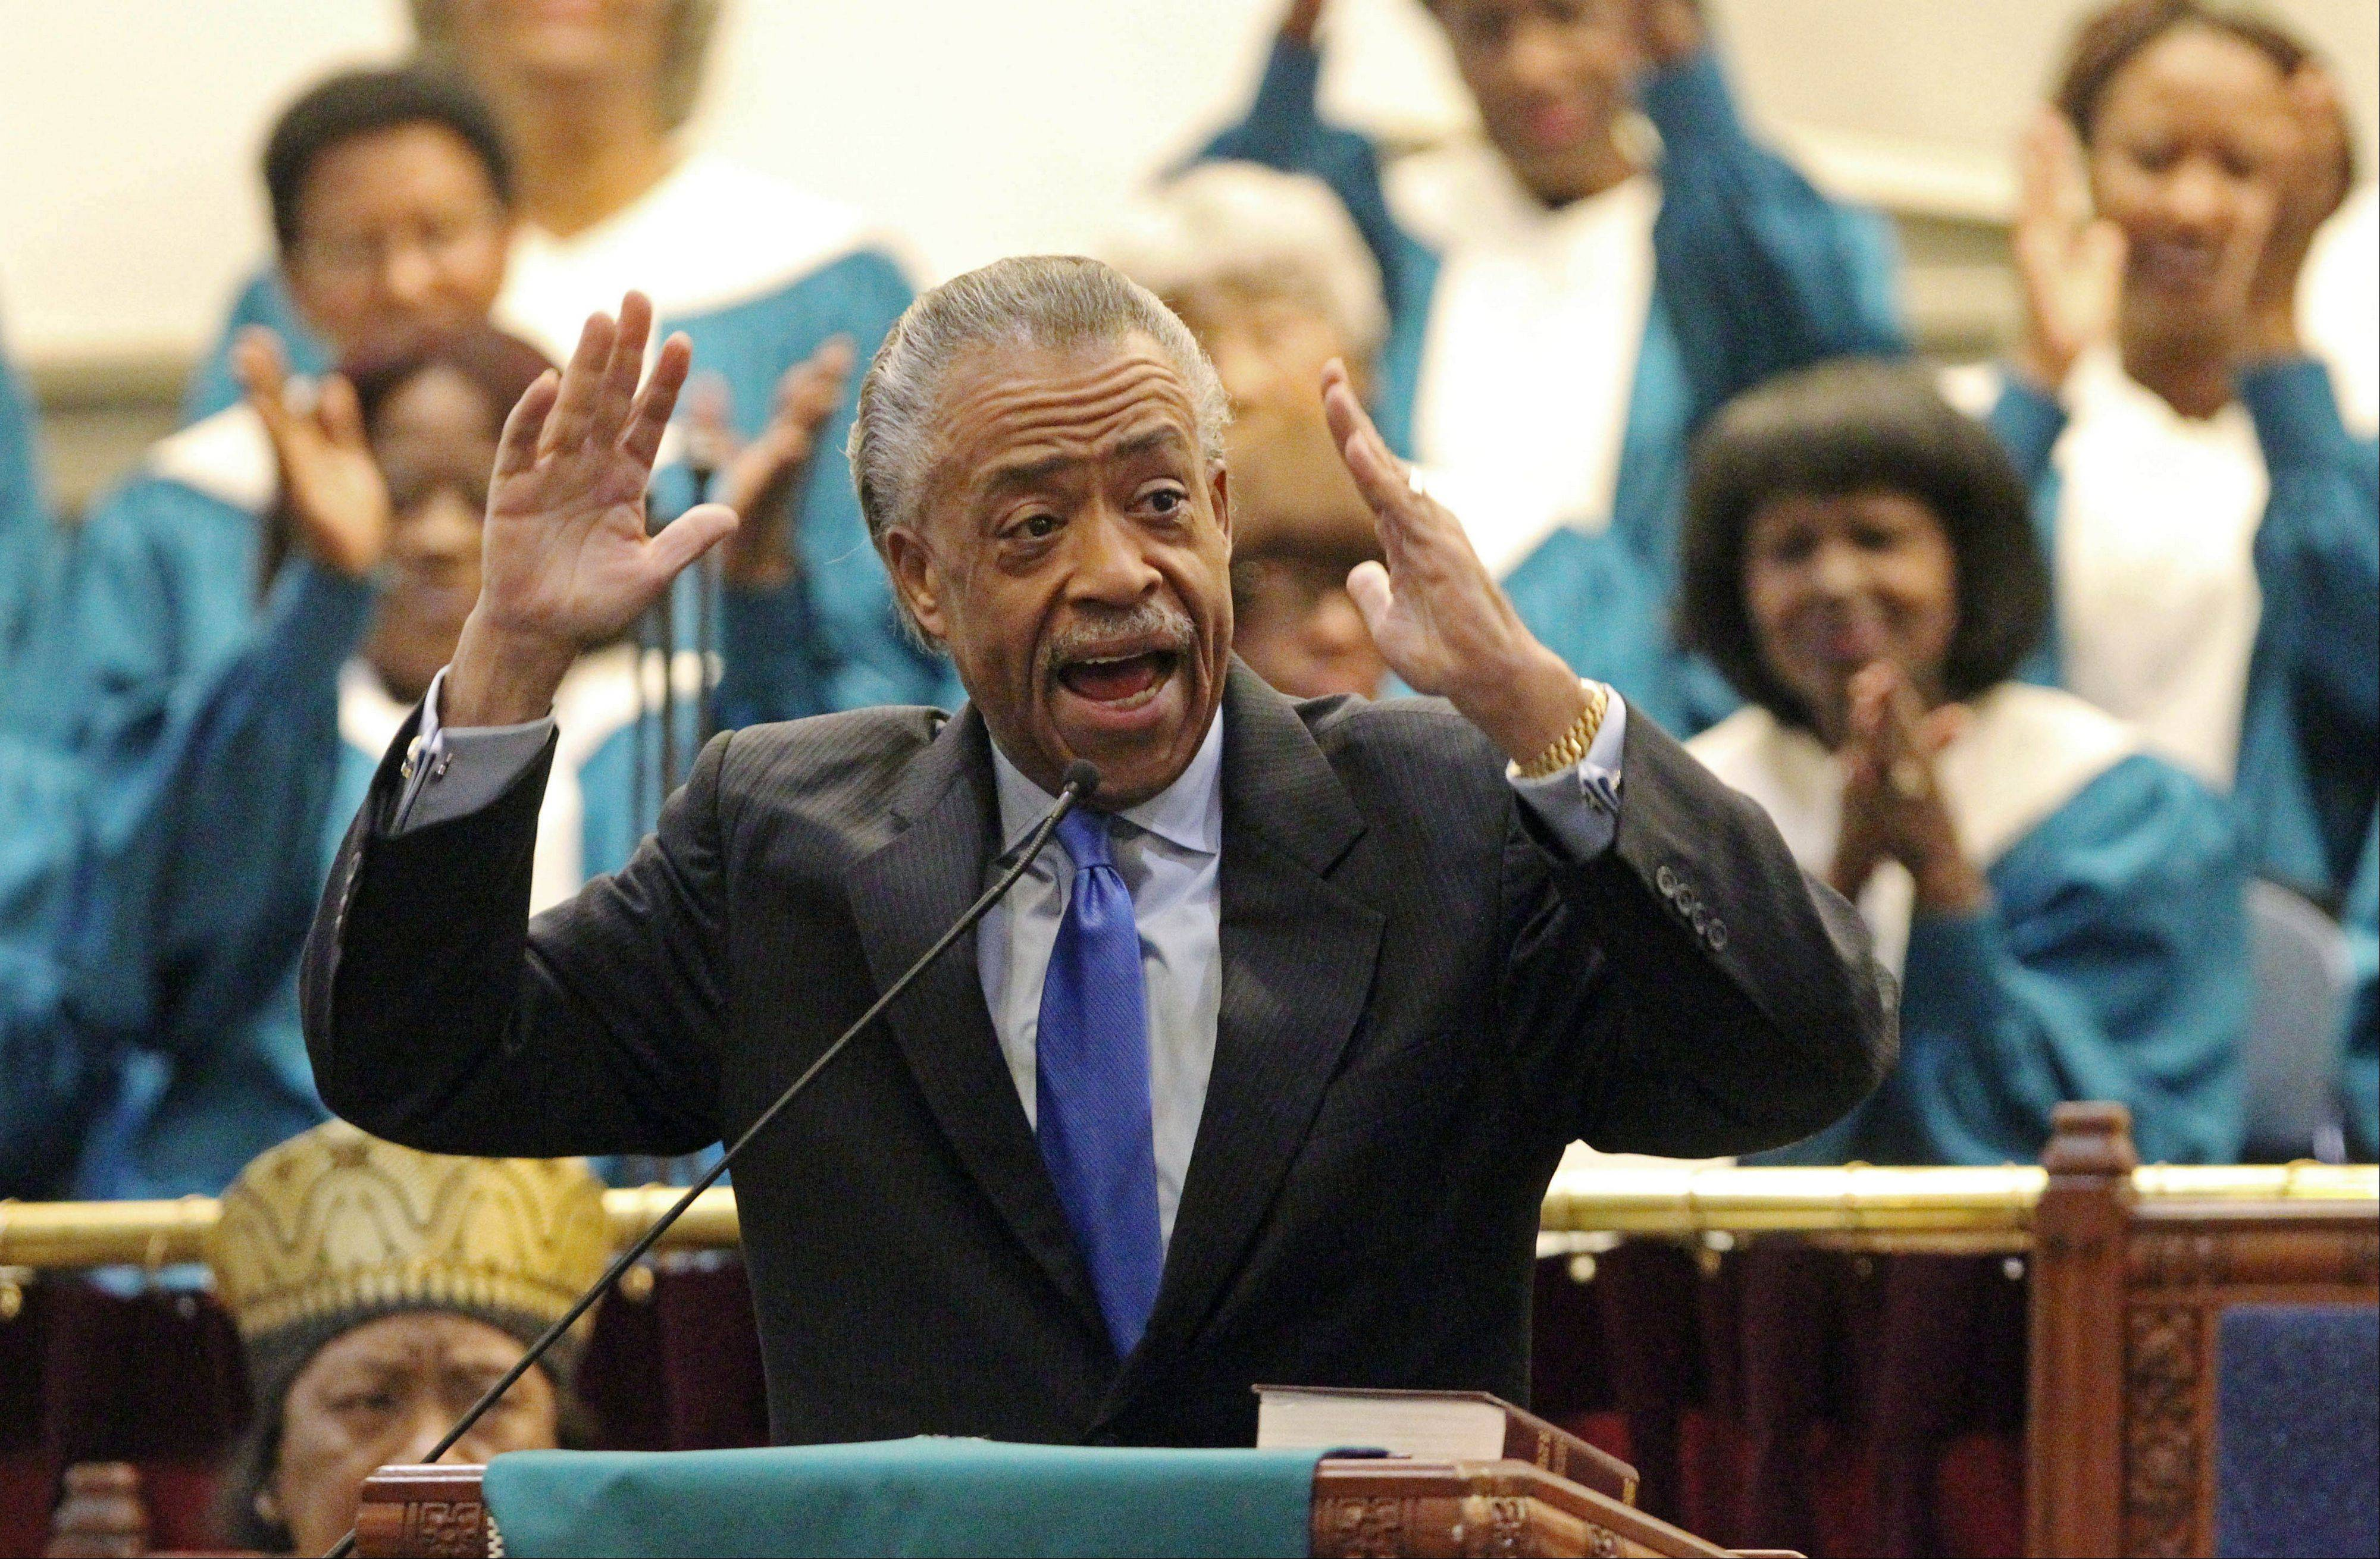 As members of the choir applaud, the Rev. Al Sharpton asks for a national day of prayer for Whitney Houston during regular Sunday services at Second Baptist Church in Los Angeles.